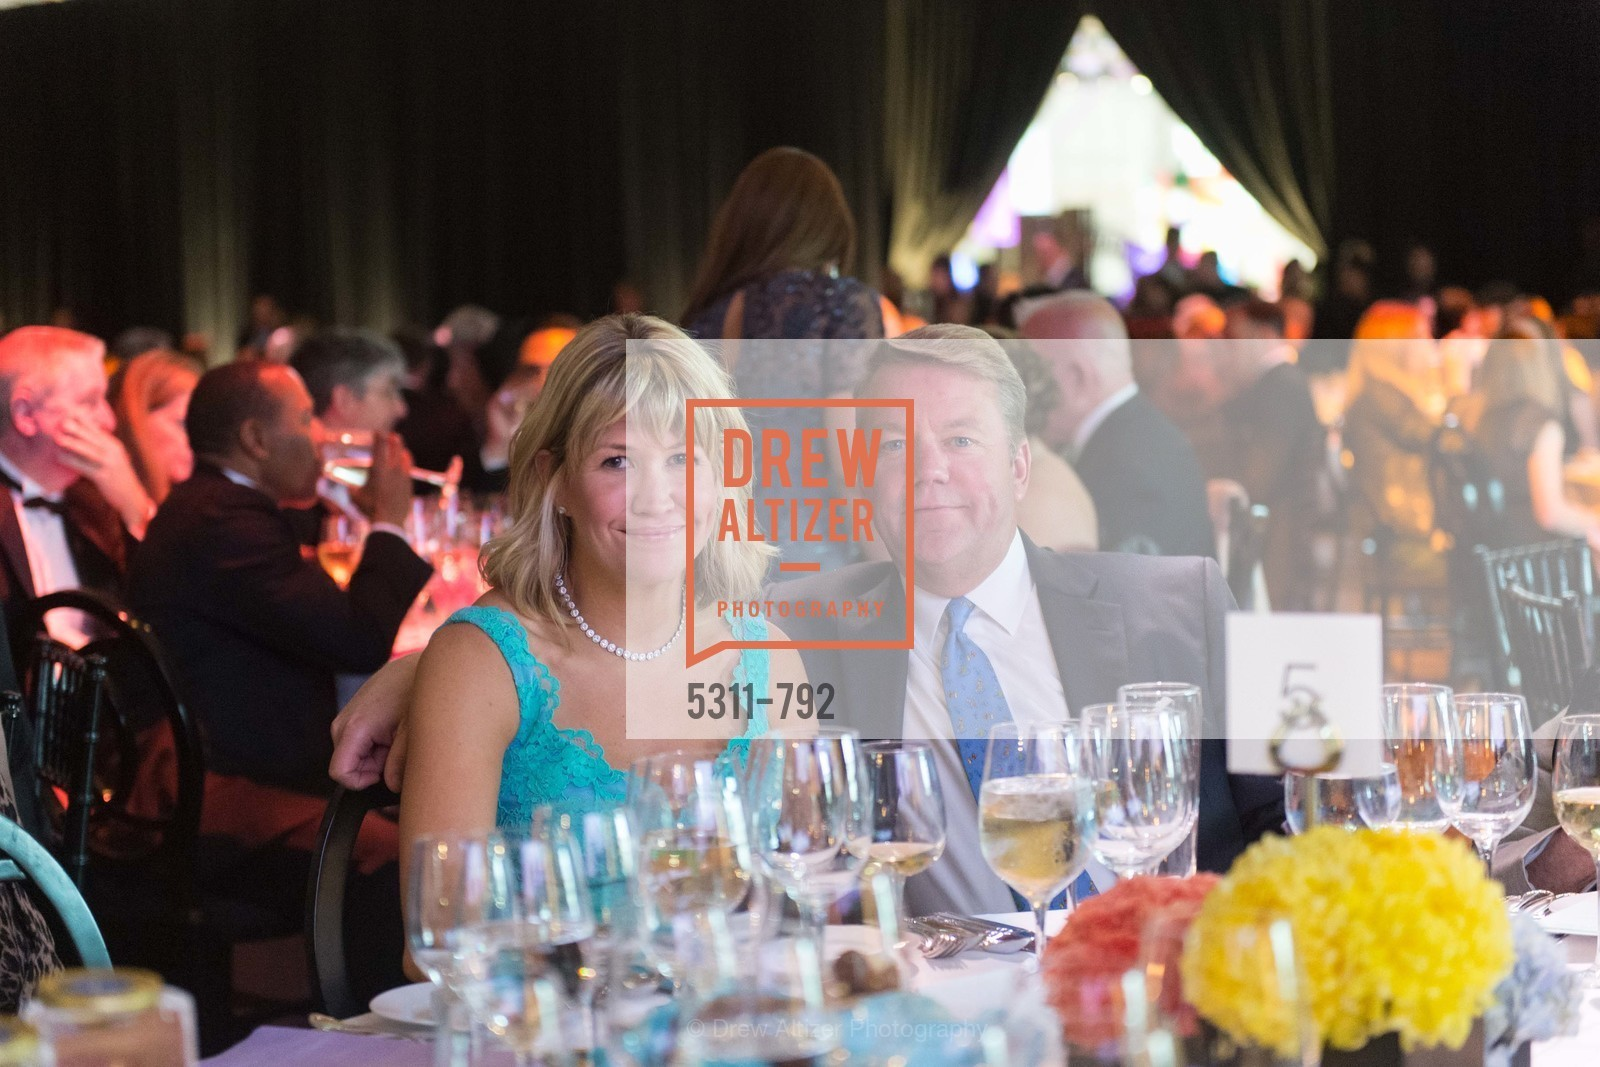 Lauren Beelar, Brit Beelar, MEALS ON WHEELS OF SAN FRANCISCO'S 28th Annual Star Chefs and Vintners Gala, US, April 19th, 2015,Drew Altizer, Drew Altizer Photography, full-service agency, private events, San Francisco photographer, photographer california